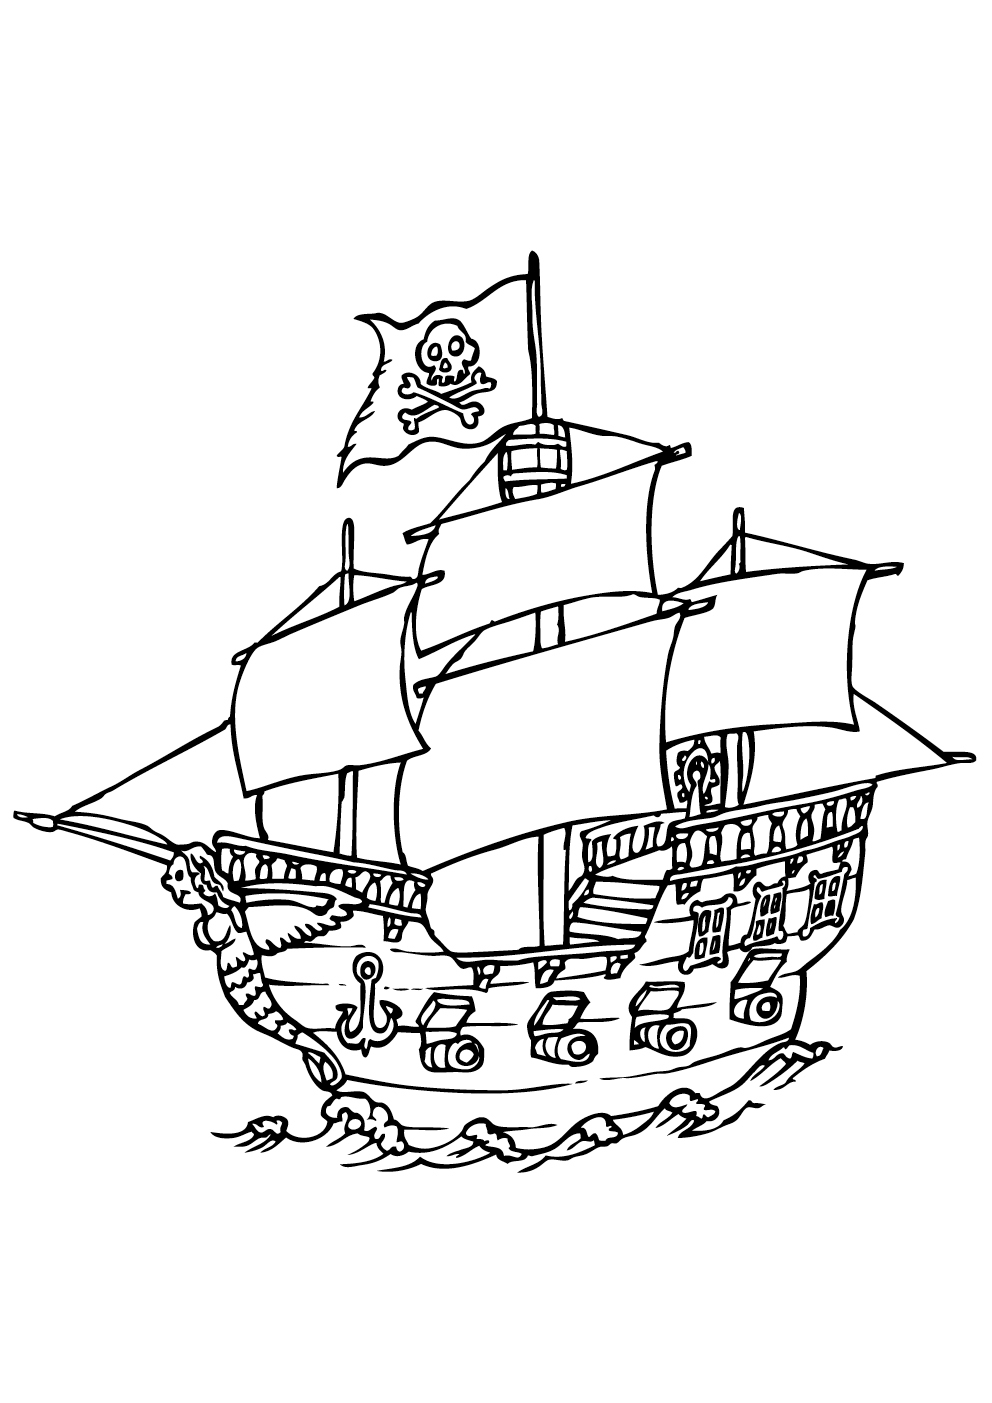 Pirates 8 coloriage de pirates coloriages pour enfants - Bateau pirate dessin ...